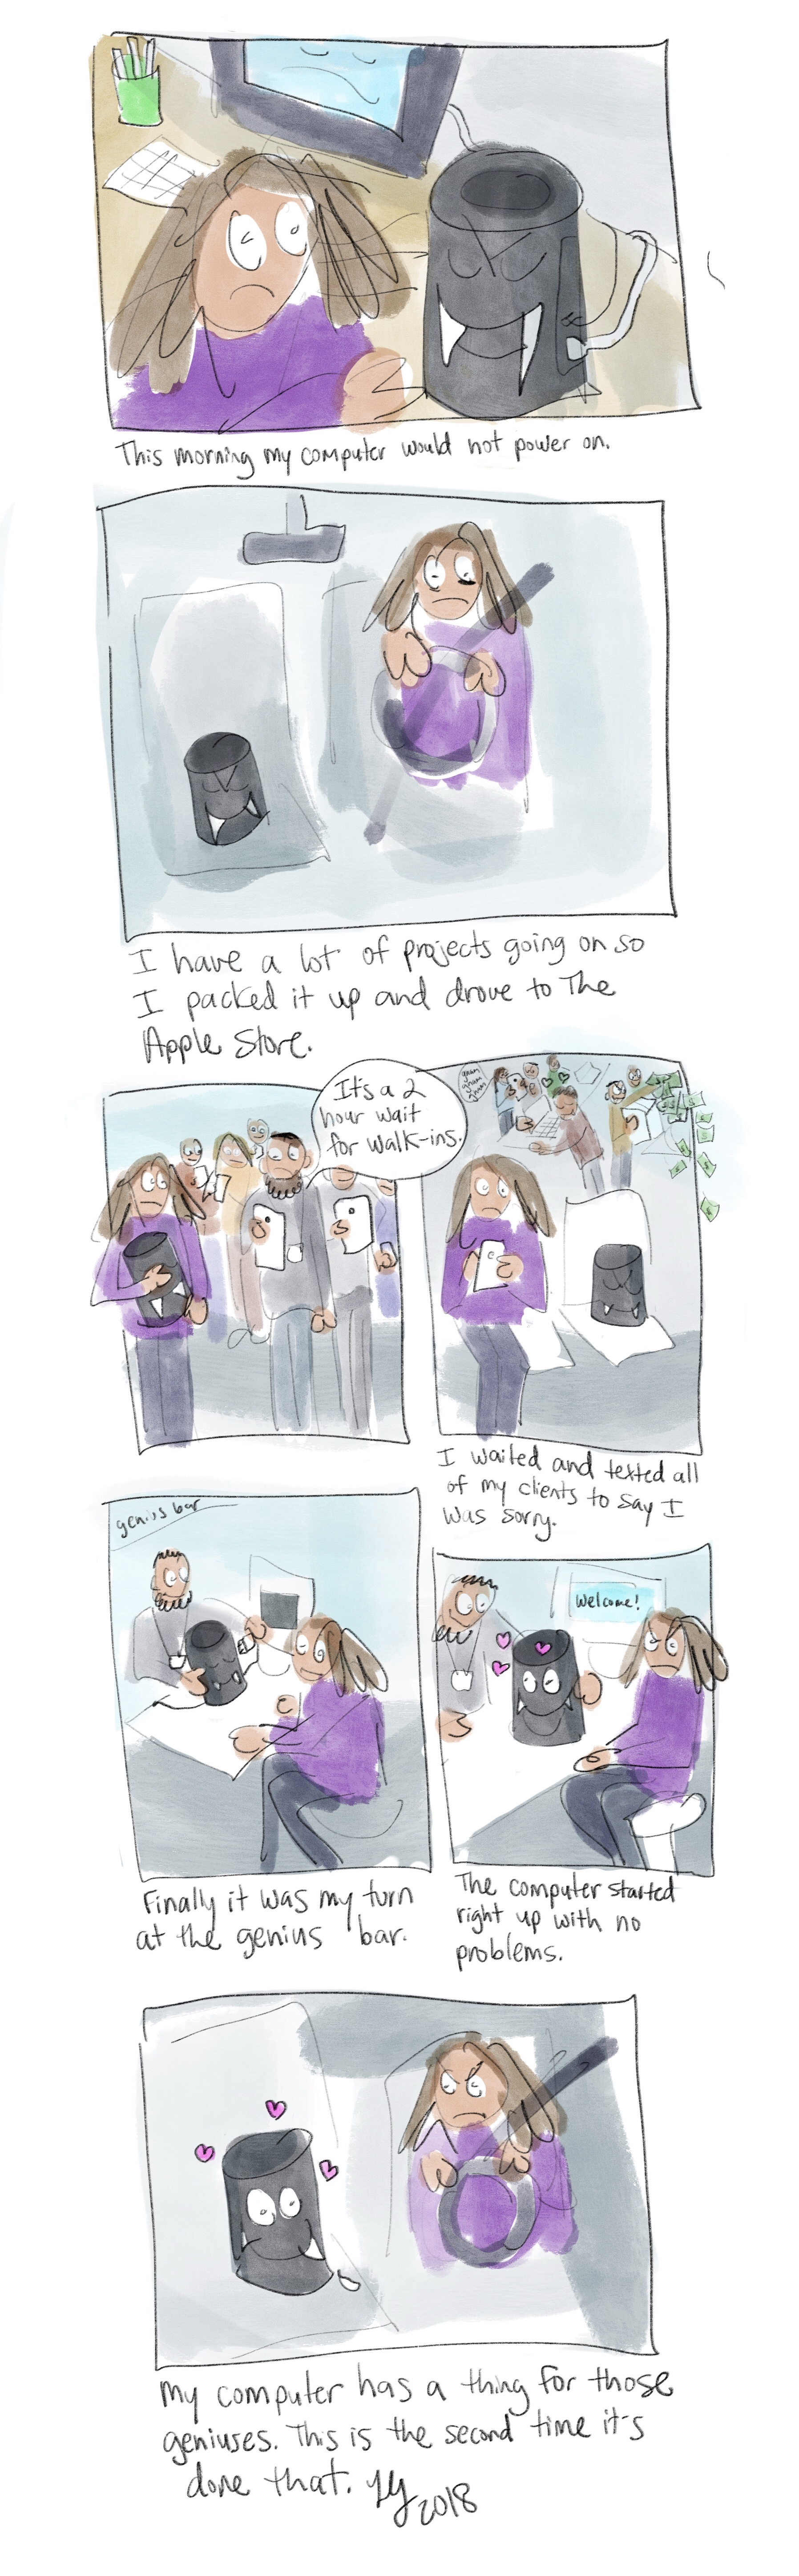 This is a funny autobiographical comic about how my computer refused to turn on. I took it to the apple store, where it started up perfectly. I think my computer has a crush on the nerds of the genius bar.